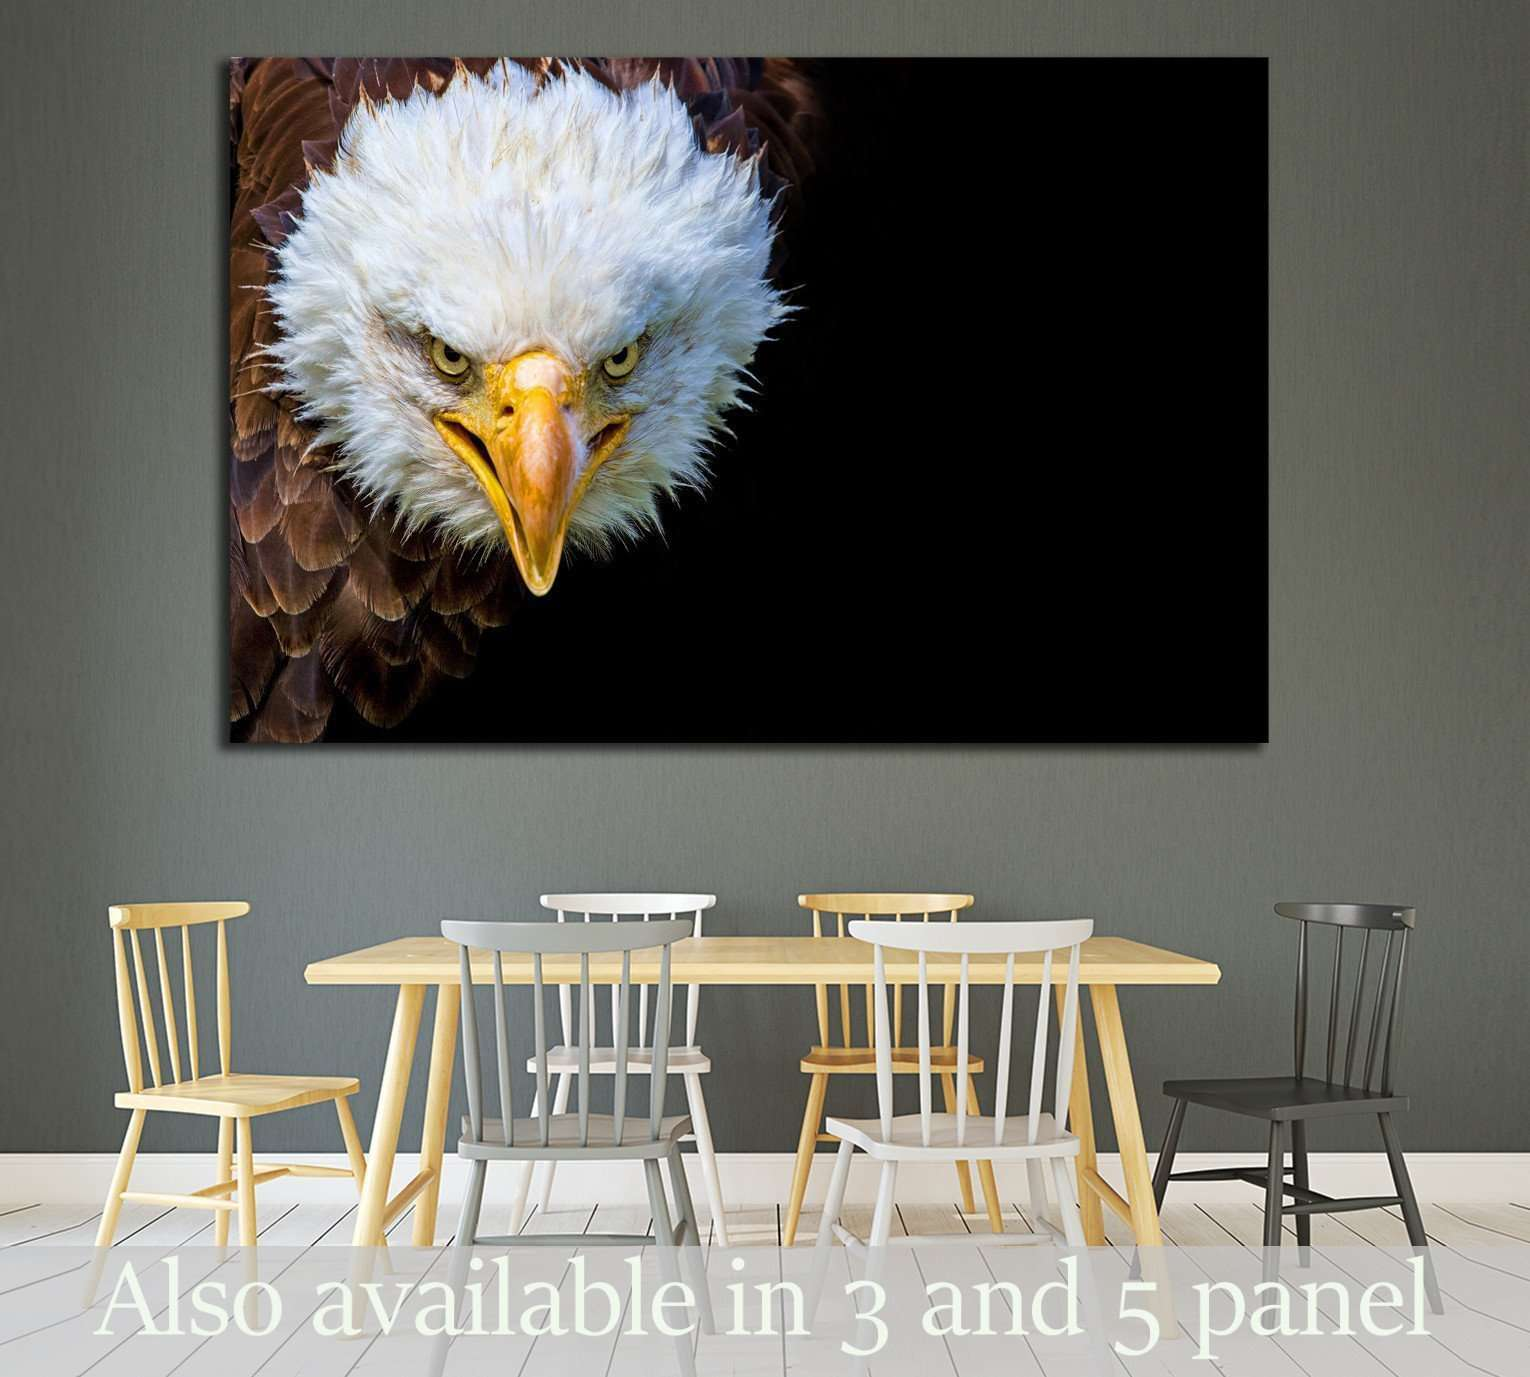 Angry north american bald eagle on black background №1863 - canvas print wall art by Zellart